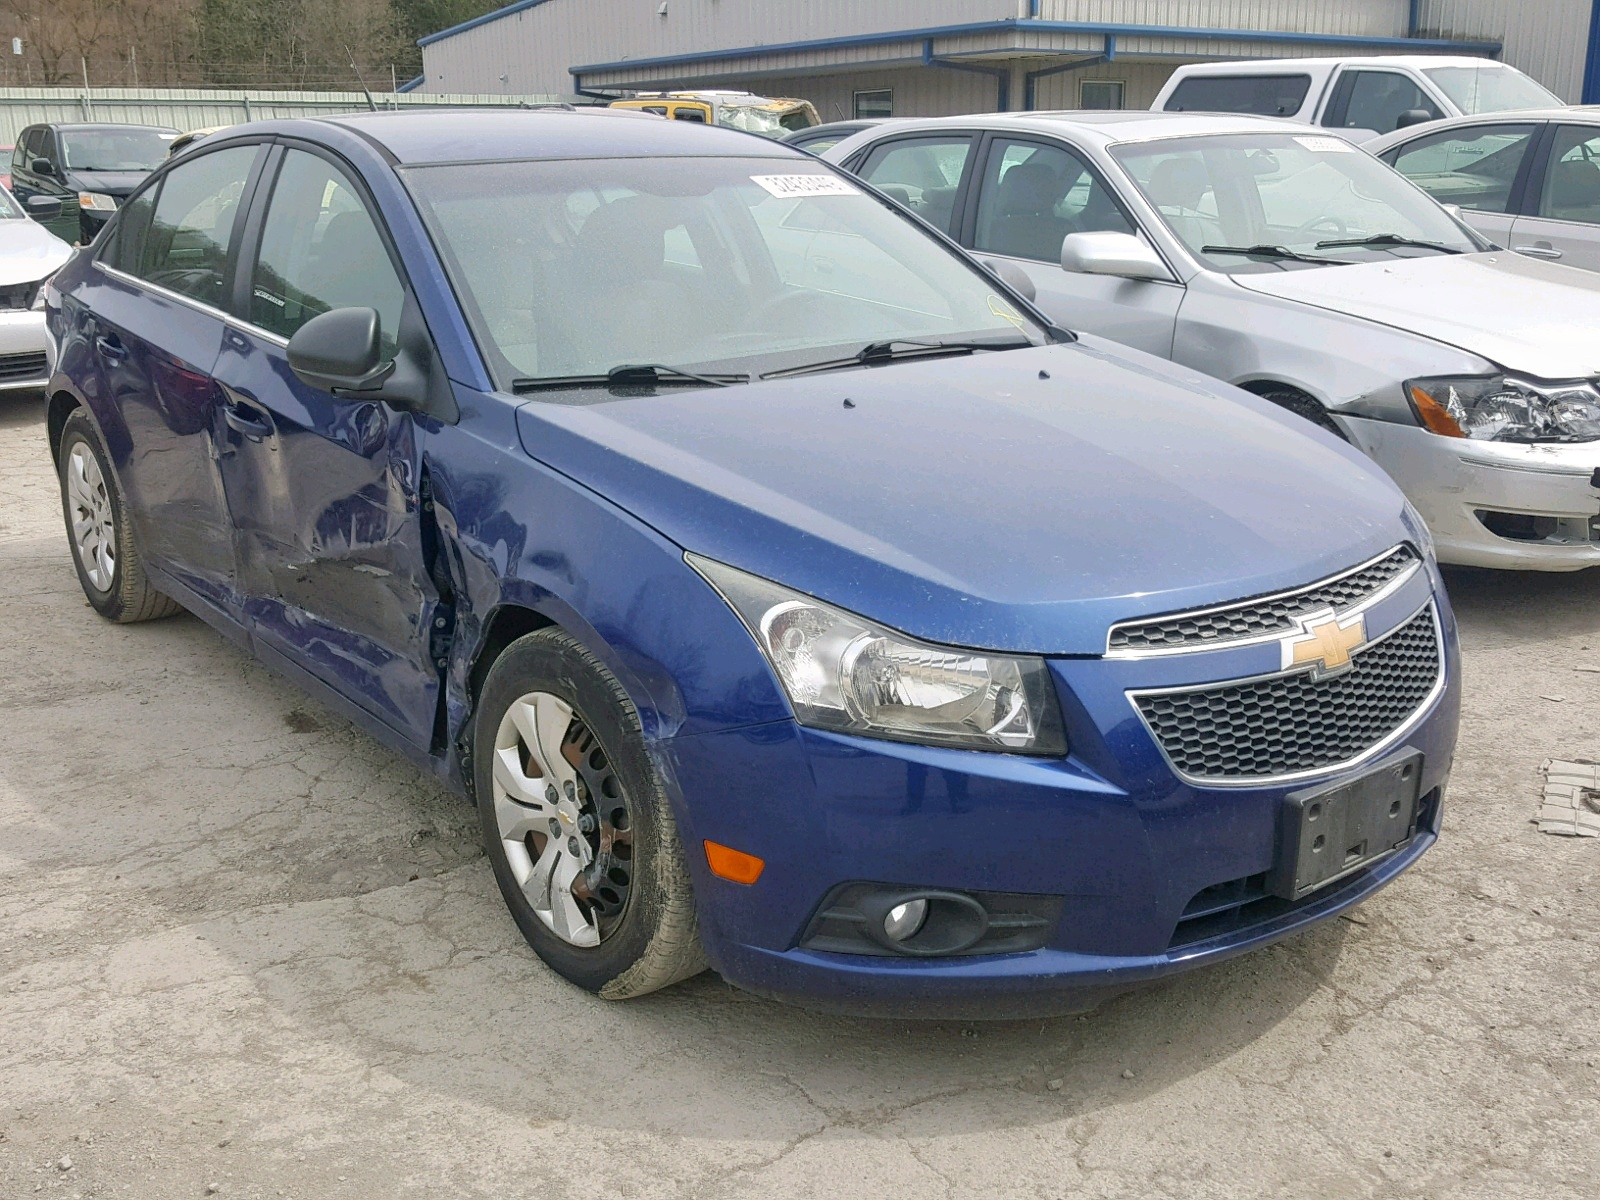 2012 Chevrolet Cruze Ls 1 8L 4 in PA - Pittsburgh North